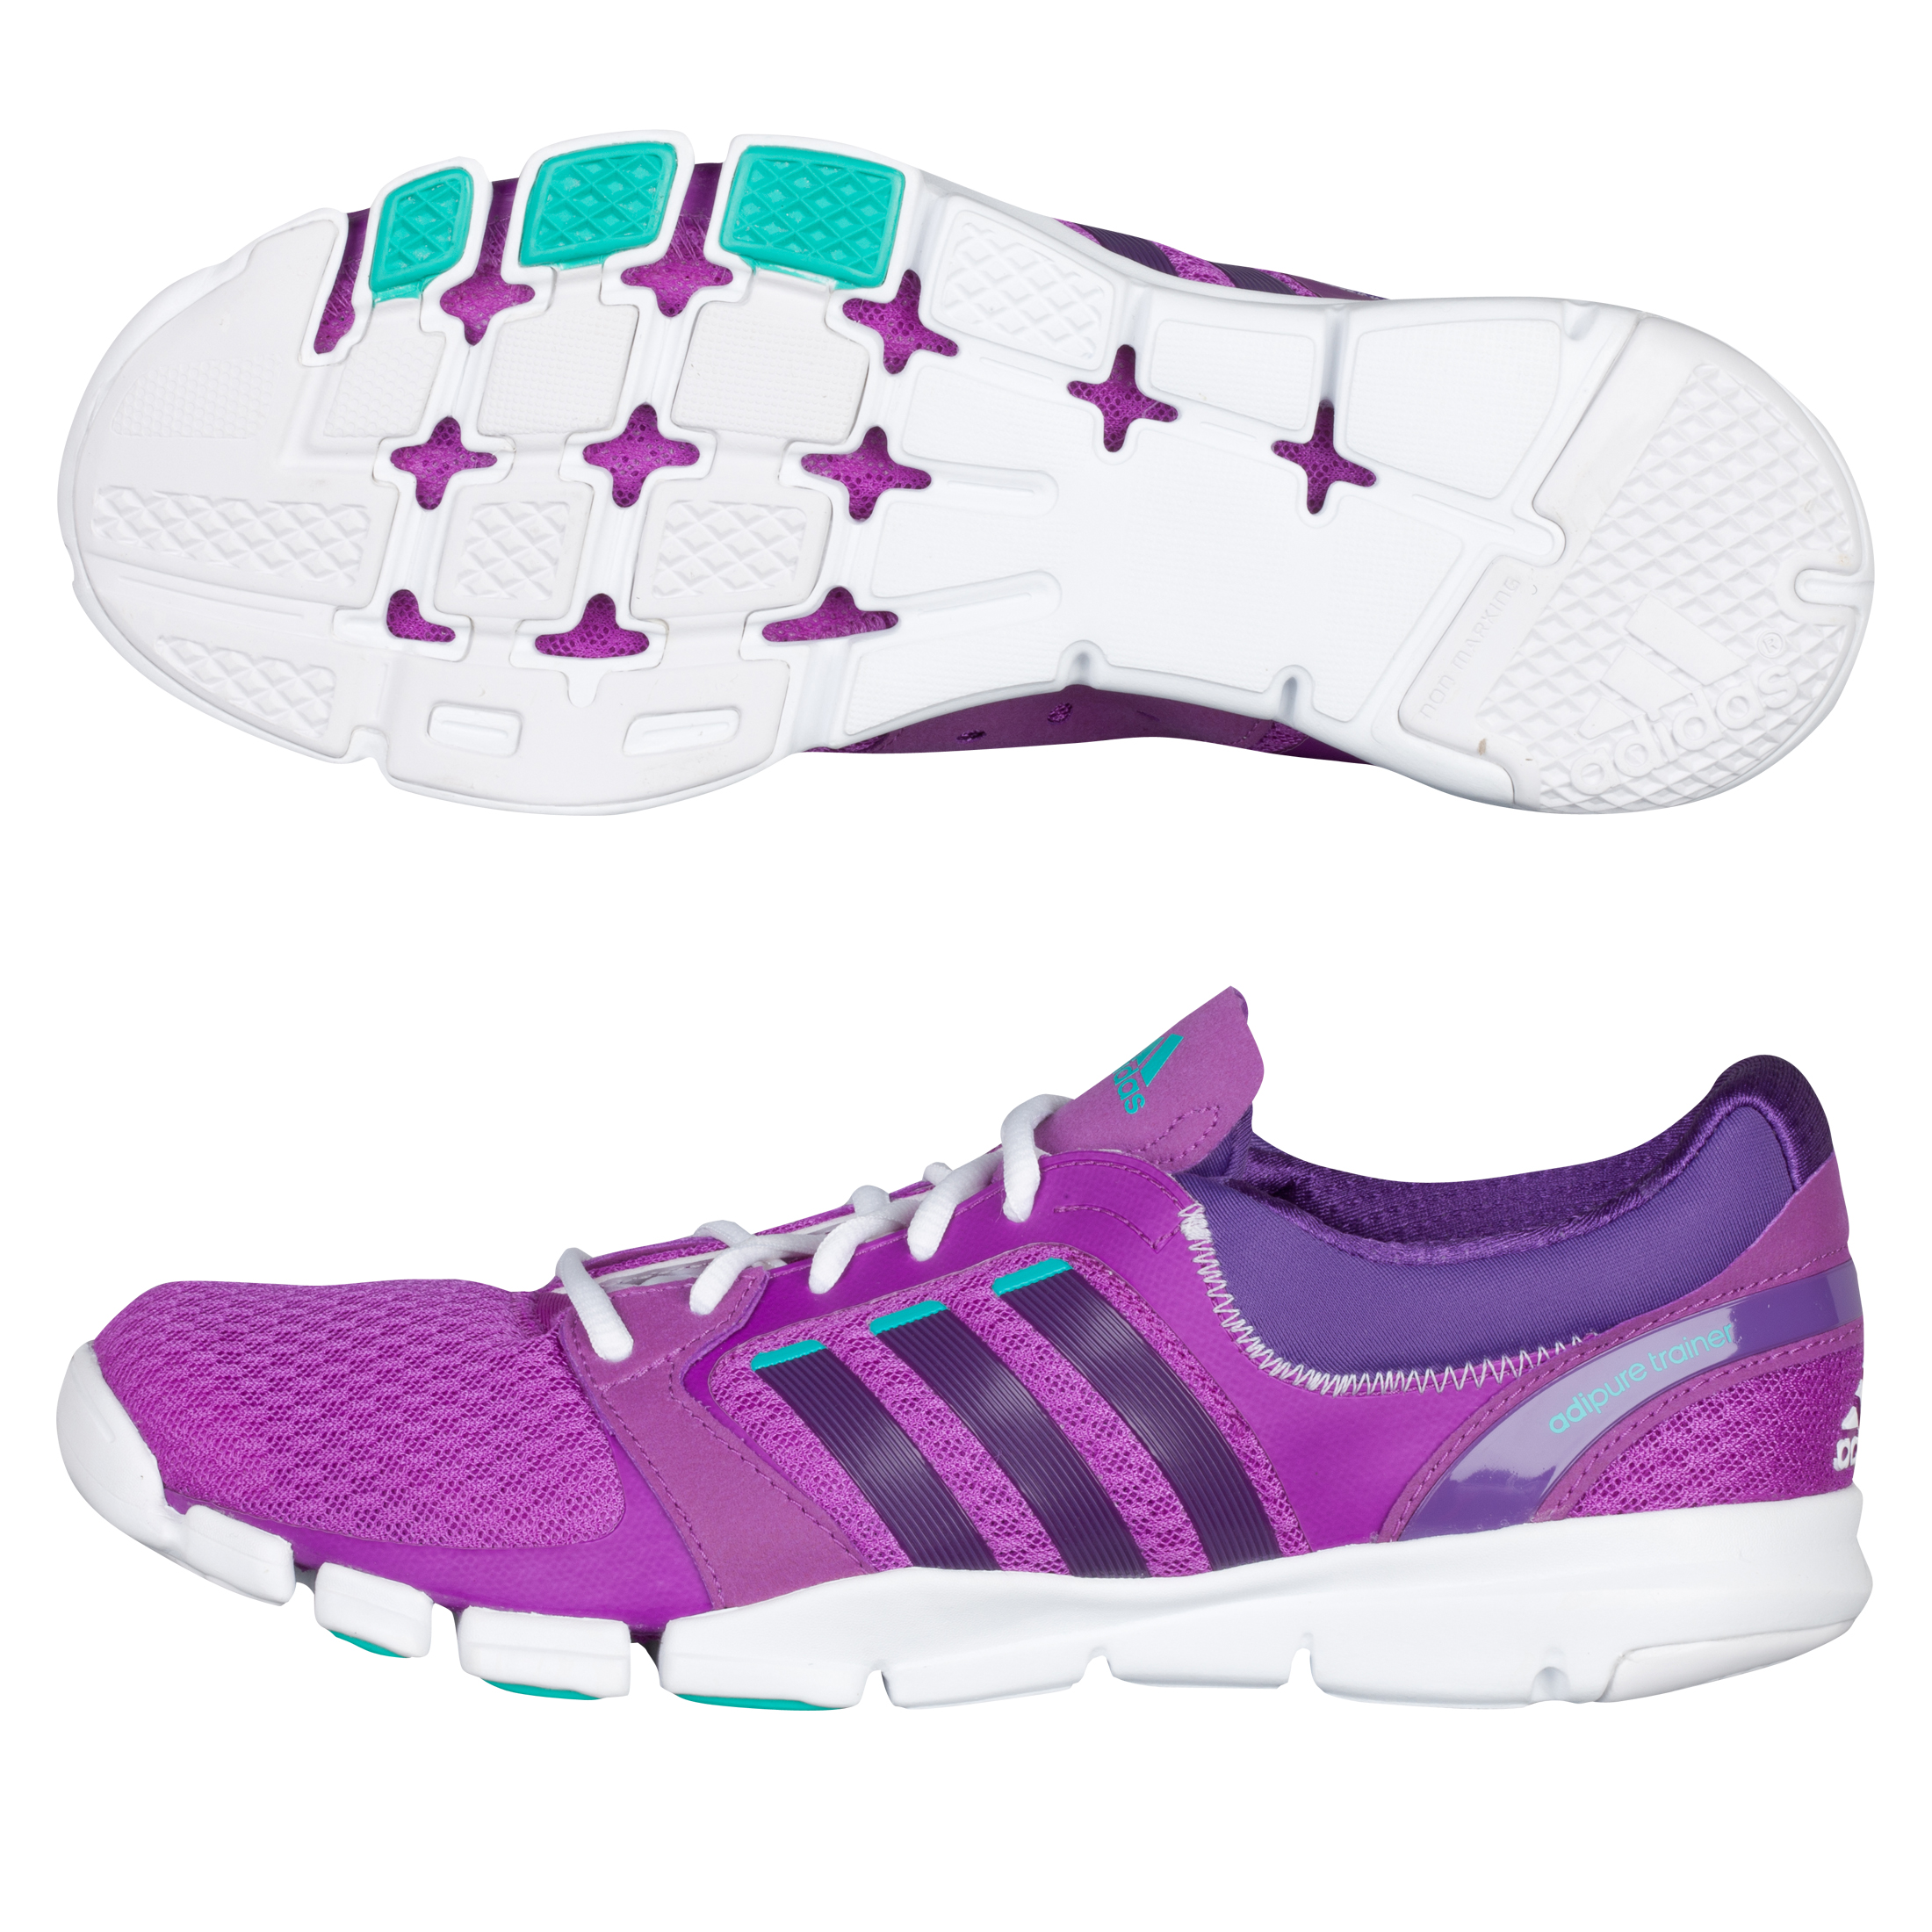 Adidas adipure Trainer 360 - Purple - Womens